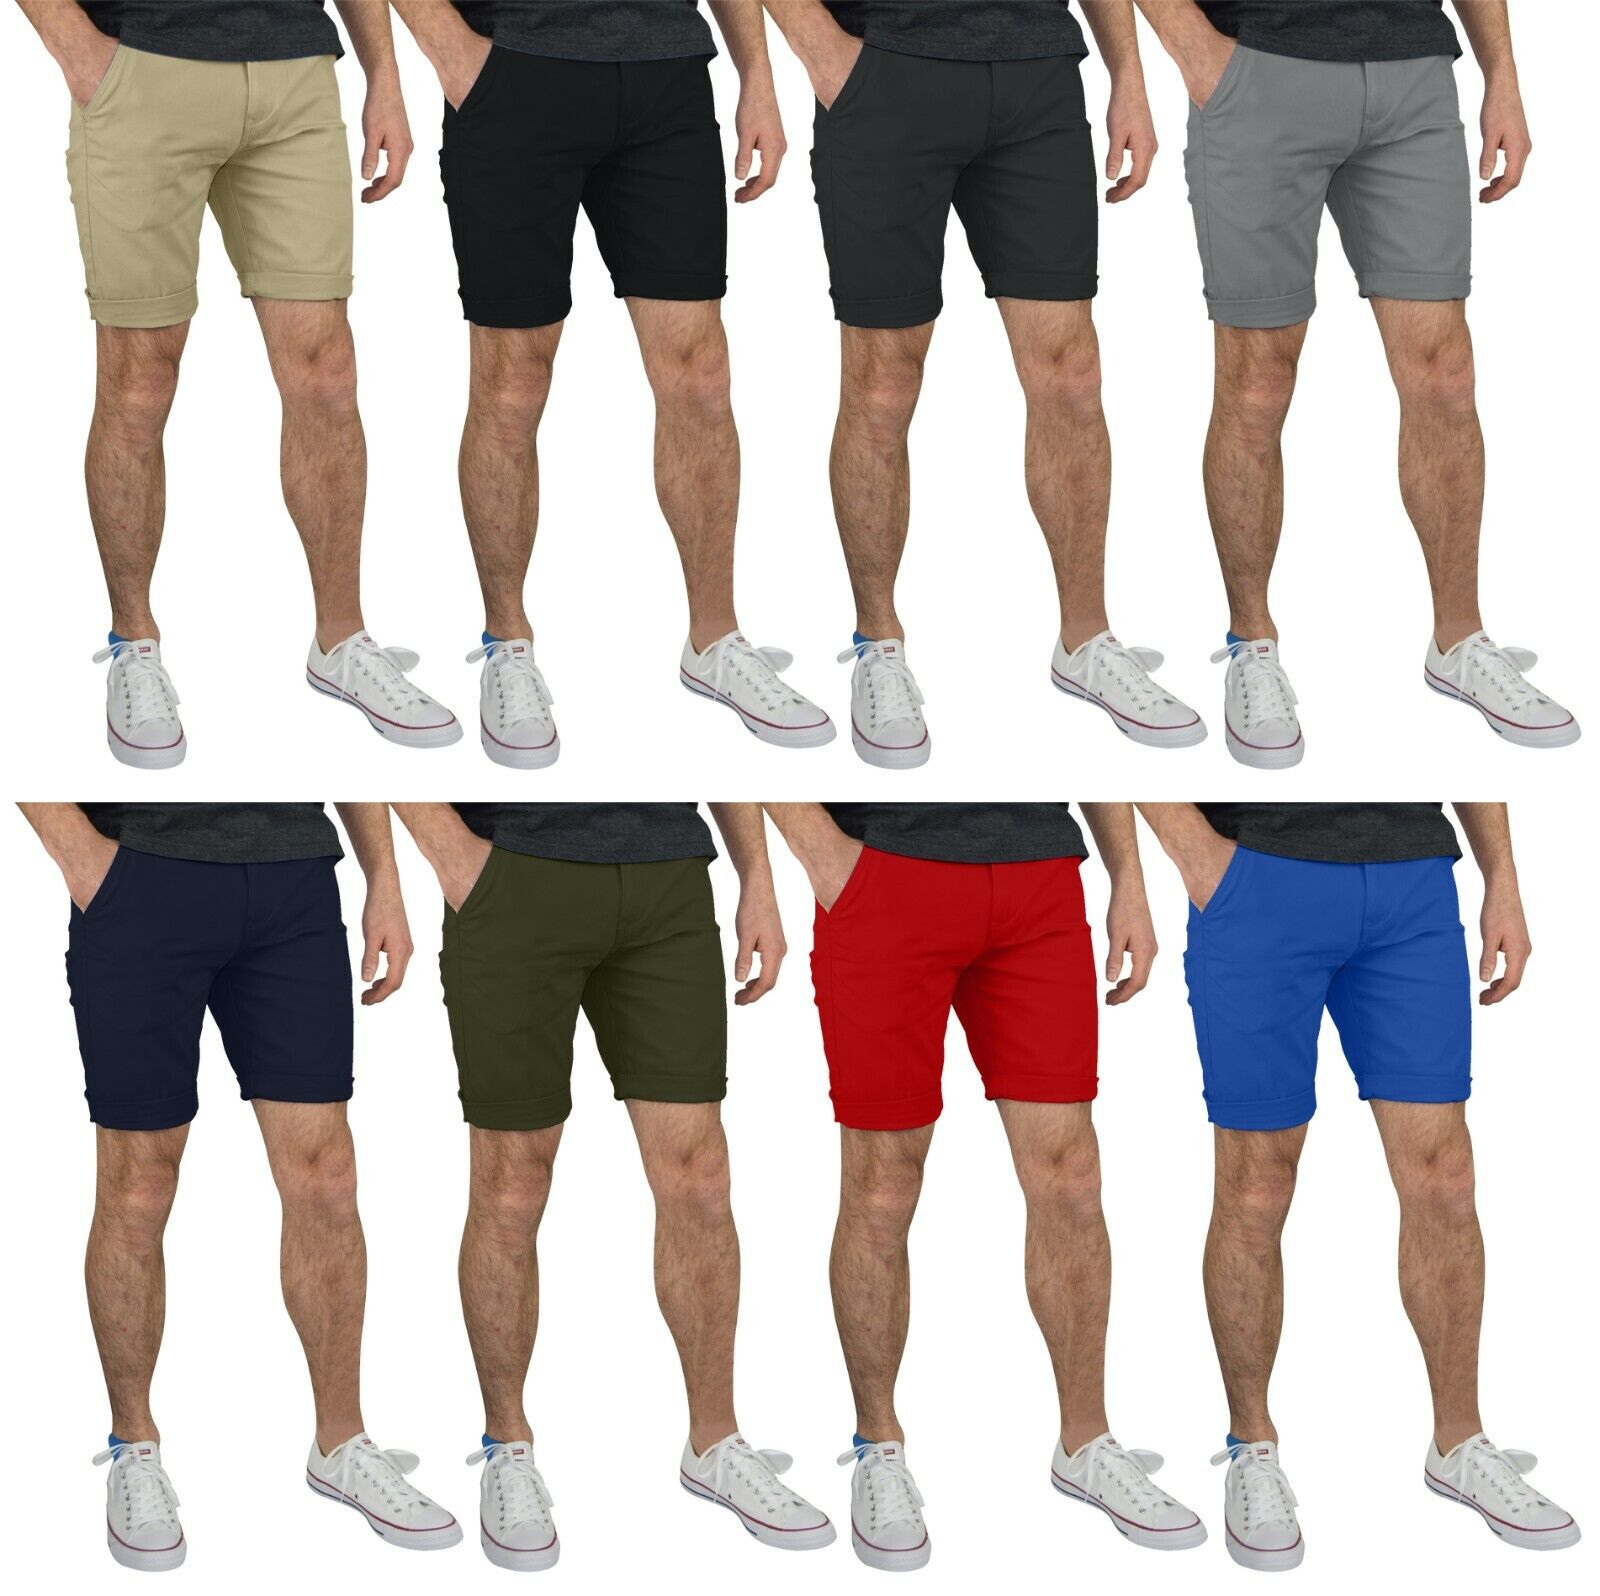 GantsHill Mens Flat Front Chino Shorts 100% Cotton Half Pants Clothing, Shoes & Accessories